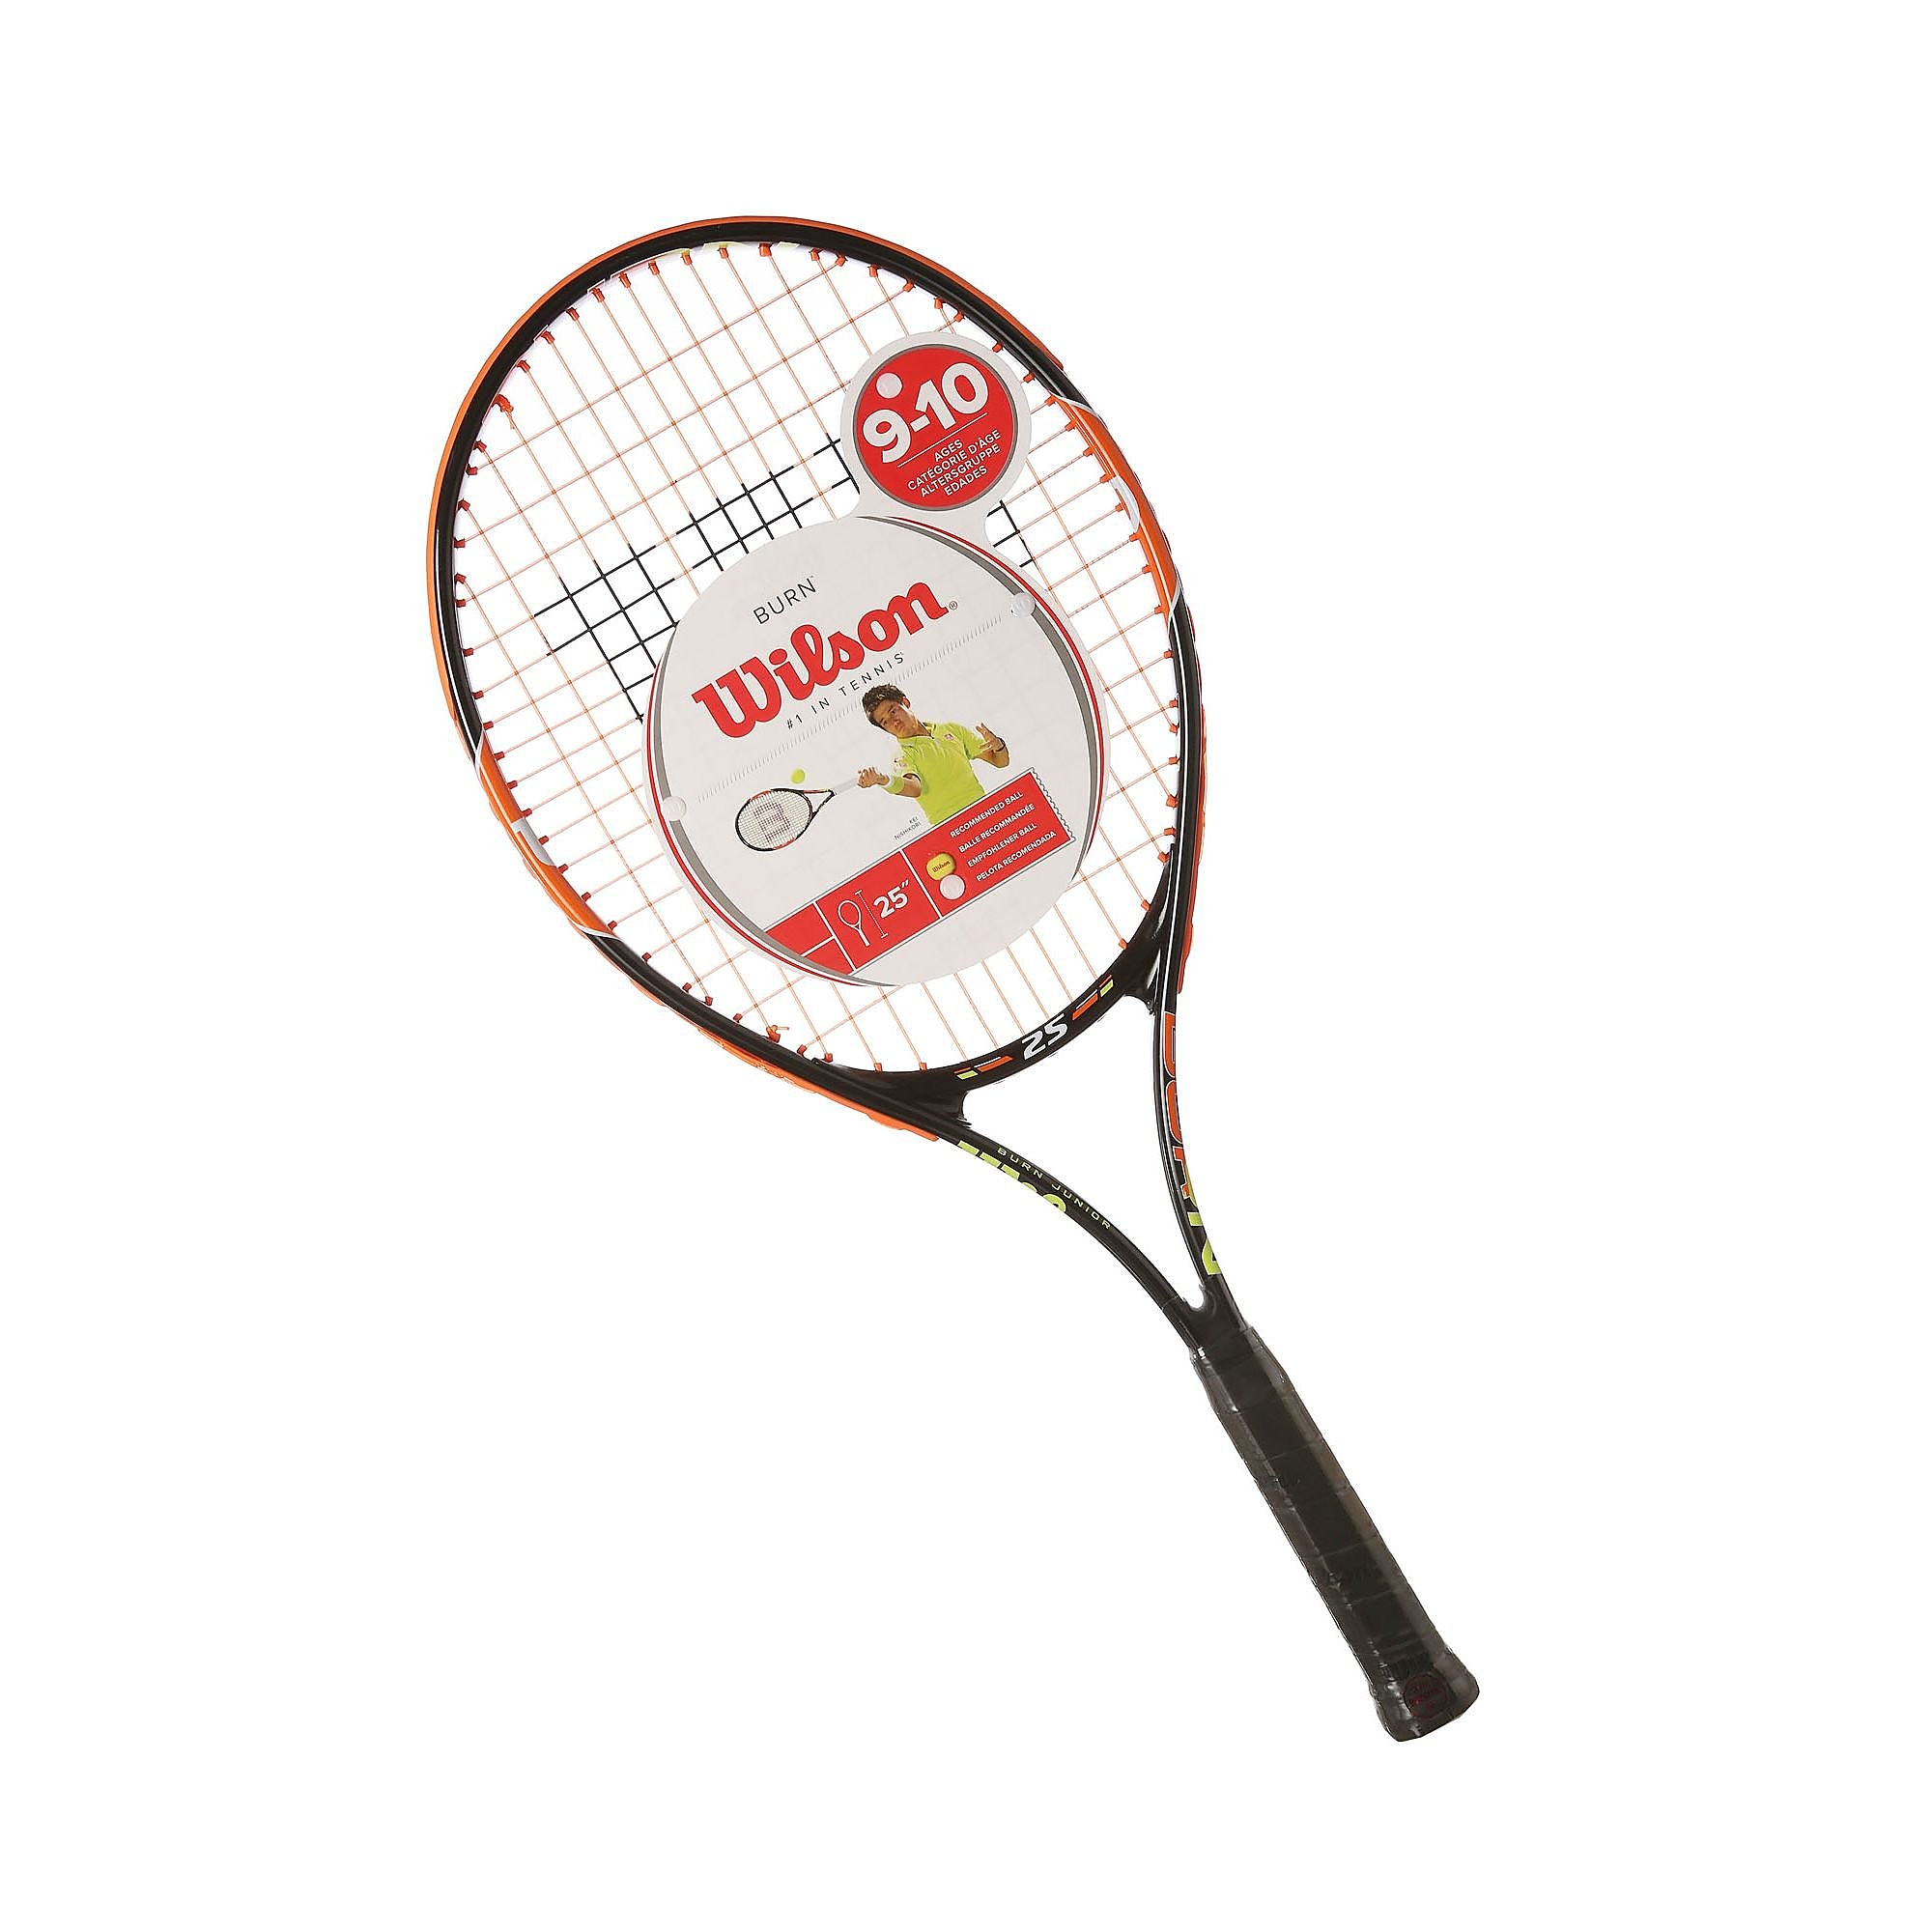 WILSON E TENNIS JR RACKETT